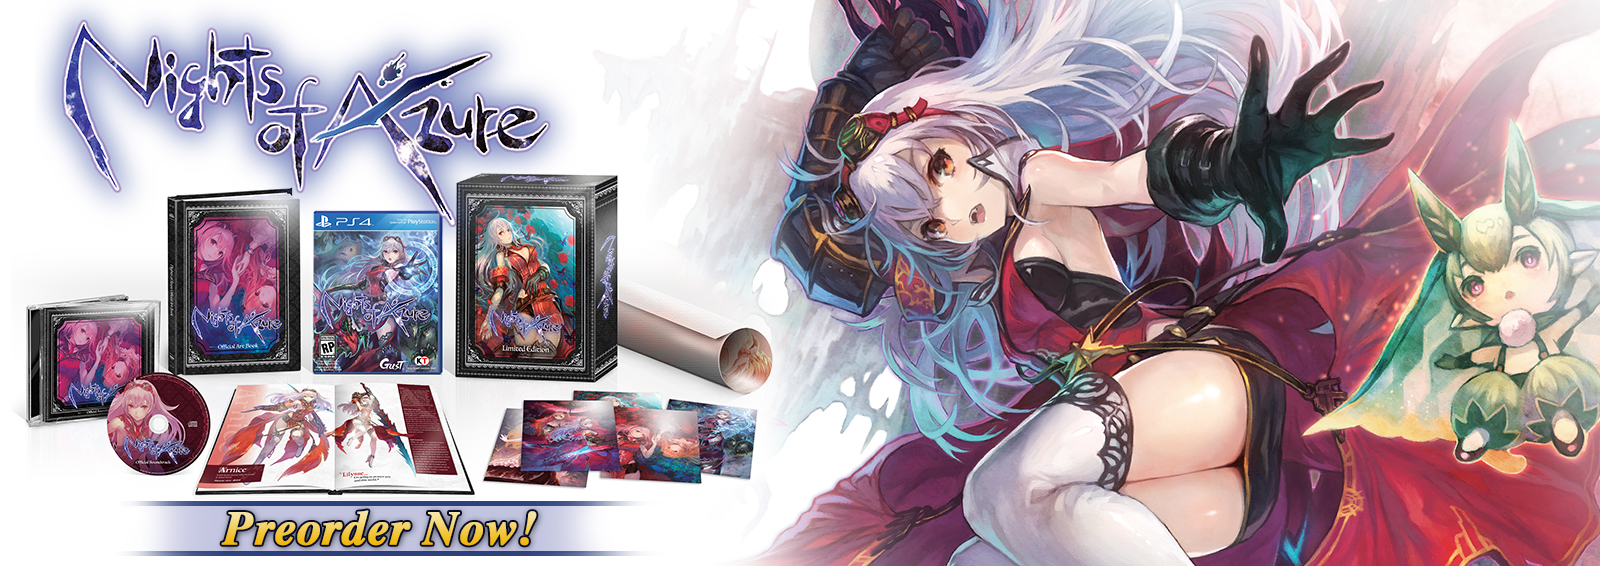 Nights of Azure - Limited Edition